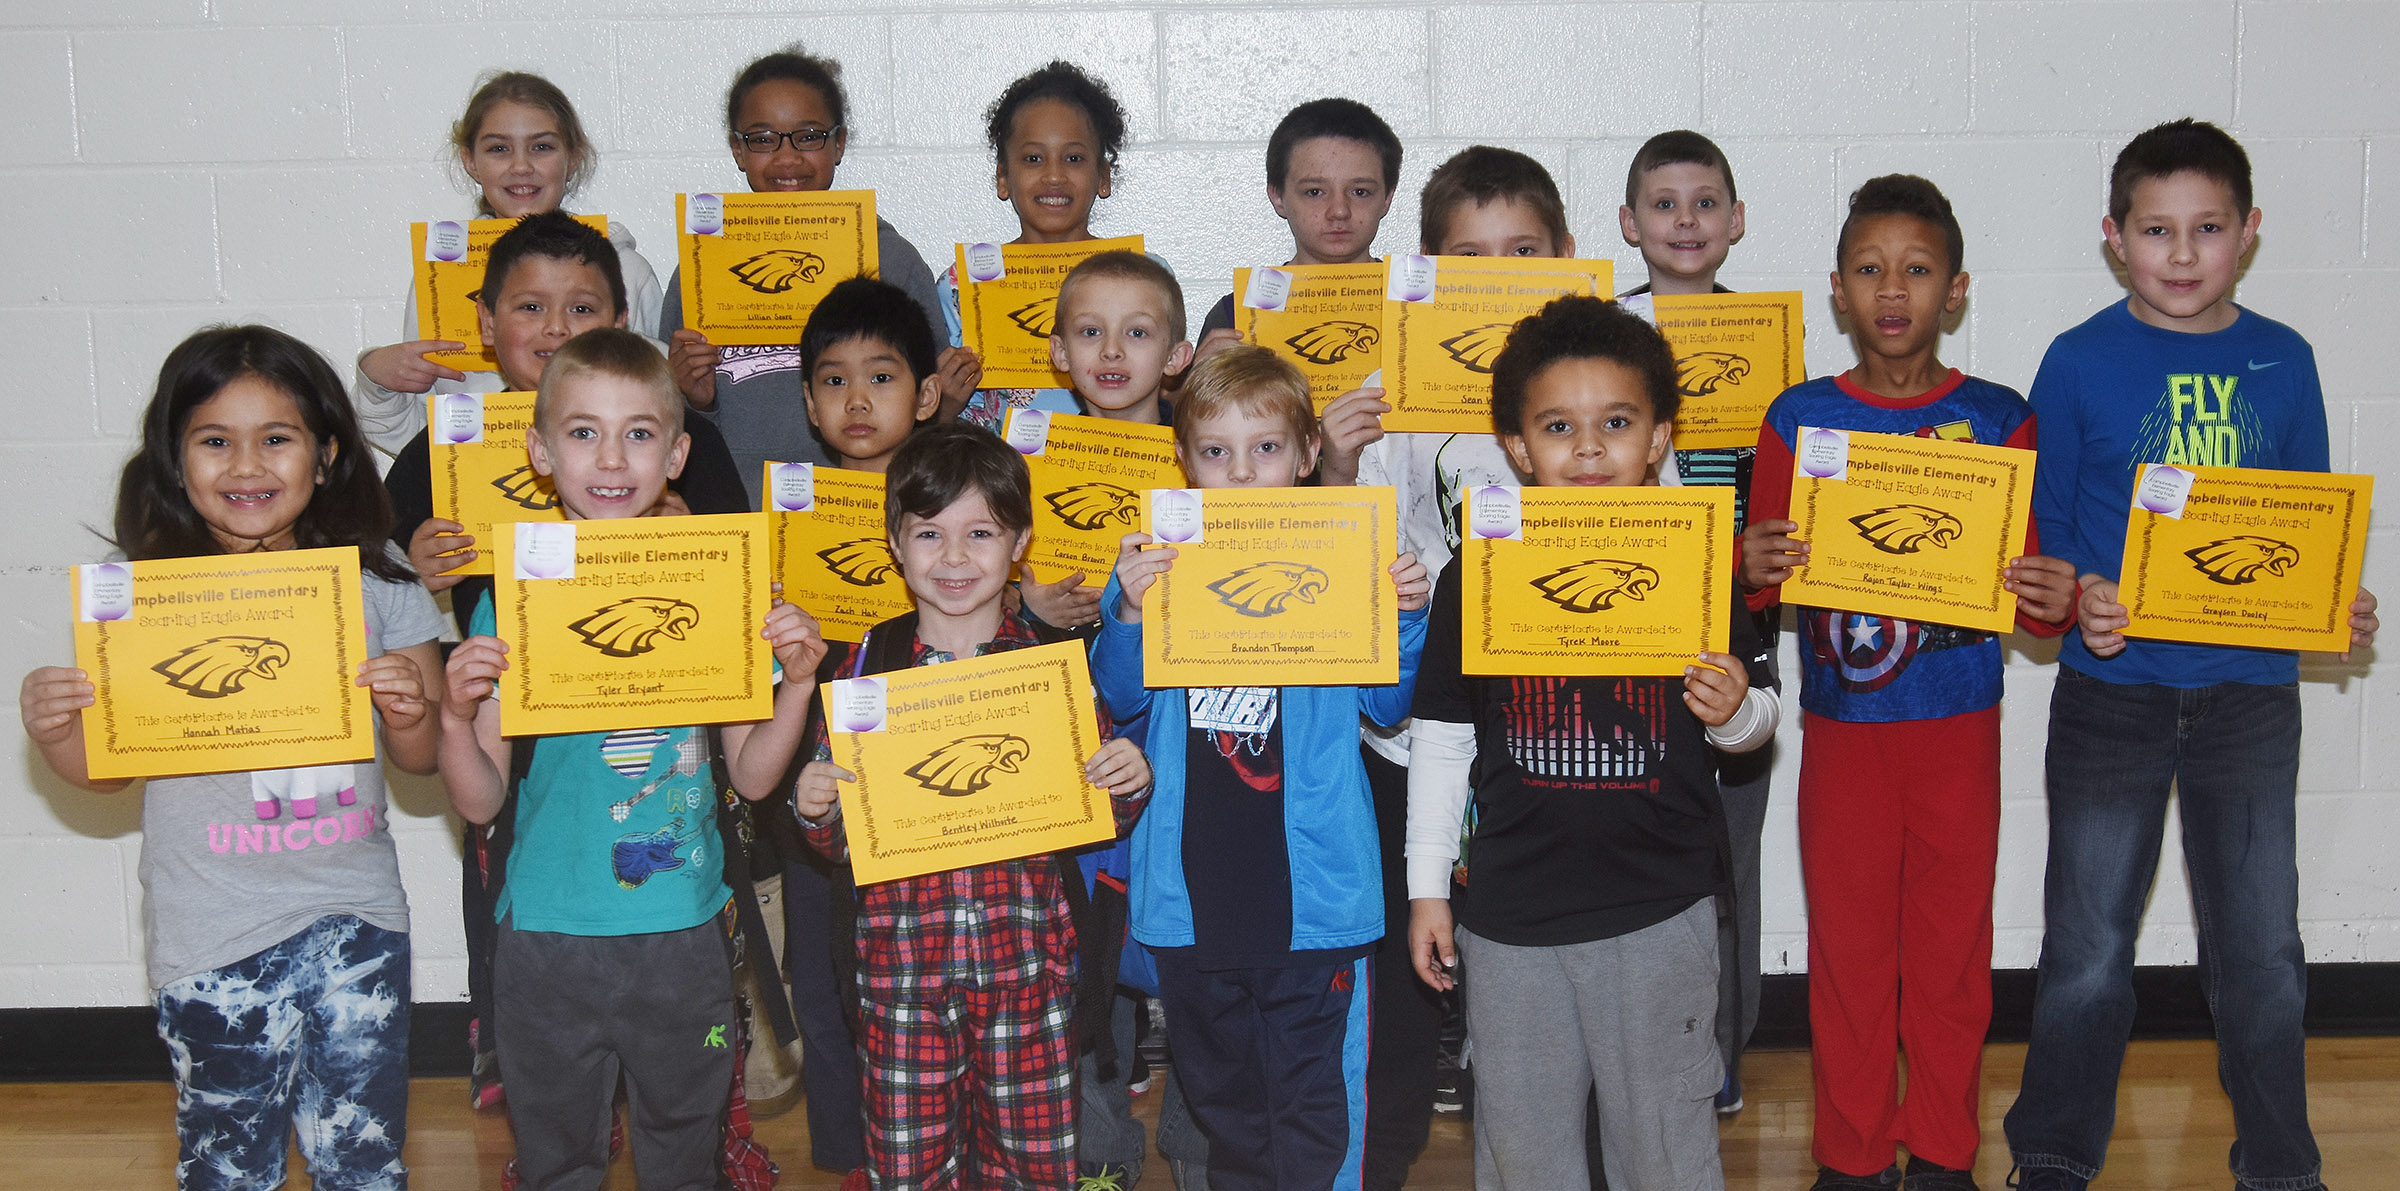 From left, front, are first-graders Hannah Matias and Tyler Bryant, kindergartener Bentley Wilhoite, second-grader Brandon Thompson and kindergartener Tyrek Moore. Second row, second-graders Alex Mixtega and Zach Hak, first-grader Carson Brown, third-graders Sean Welch and Rajon Taylor and fourth-grader Grayson Dooley. Back, fifth-graders Harley Couch-Allen and Lillian Sears, third-grader Yazlyn Sutton, fifth-grader Chris Cox and third-grader Ryan Tungate. Absent from the photo are first-grader Jaden Lutz, third-grader Kae'vin Spaulding and fourth-grader Narissa Barnett.